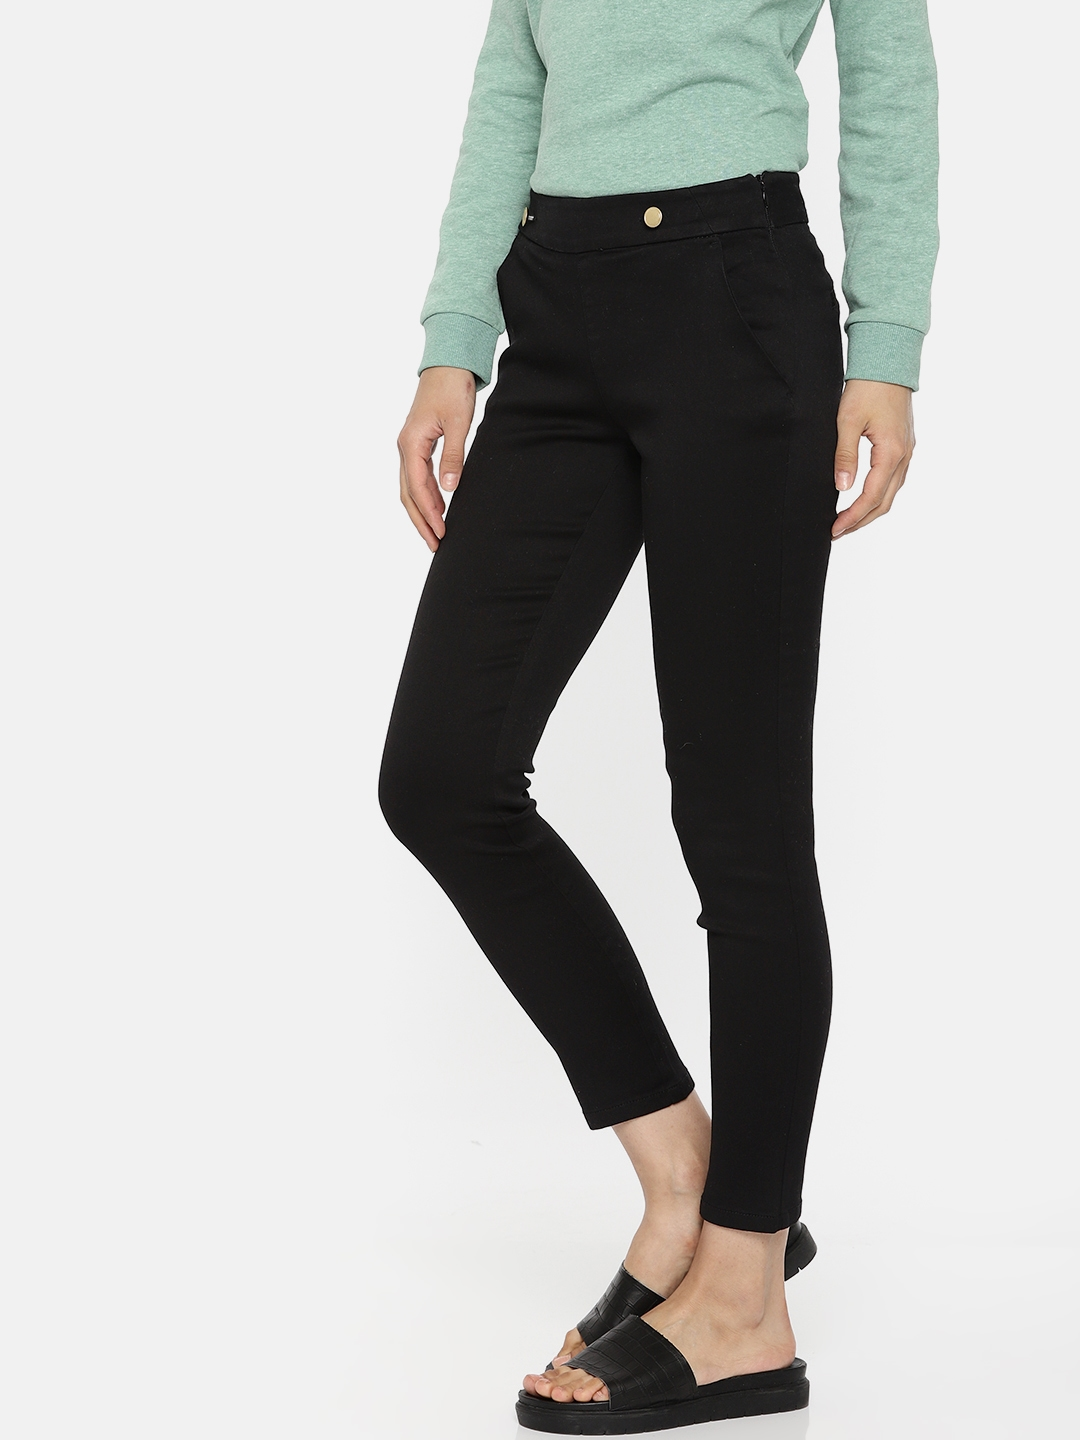 758c7da18ee2b Buy ONLY Women Black Slim Fit Solid Cigarette Trousers - Trousers ...